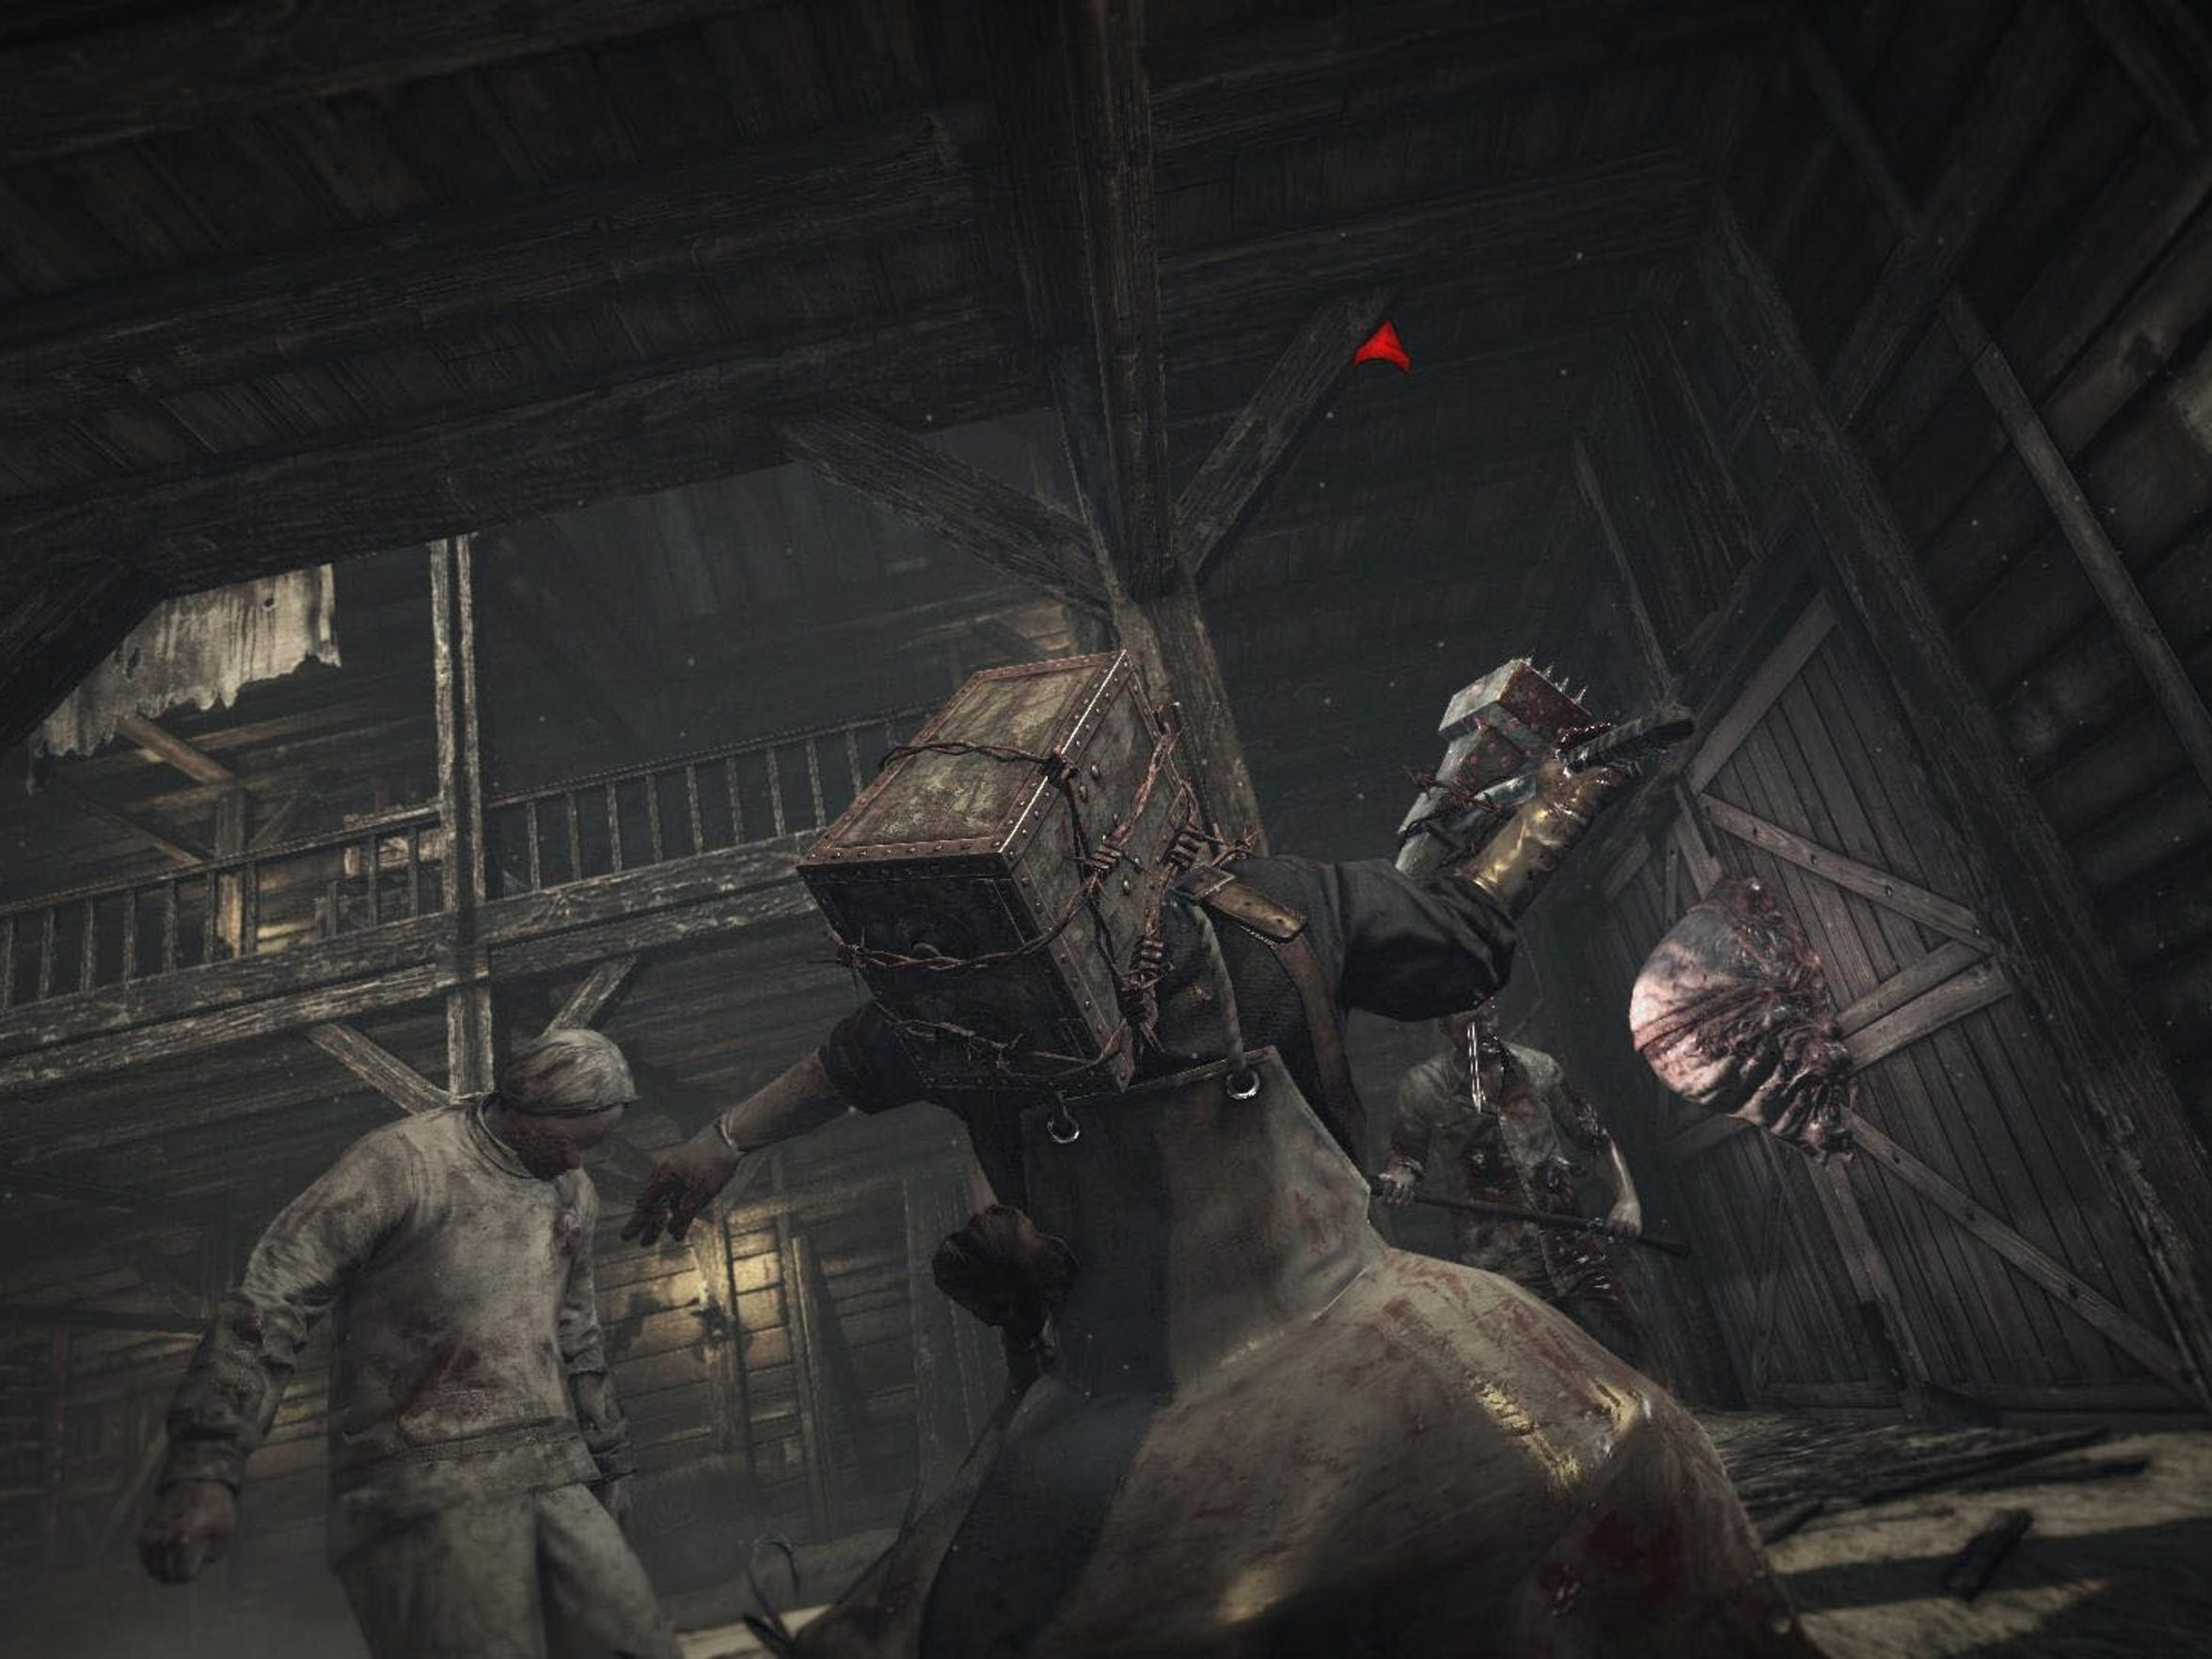 Now you're playing with power as the Keeper in The Evil Within: The Executioner DLC.